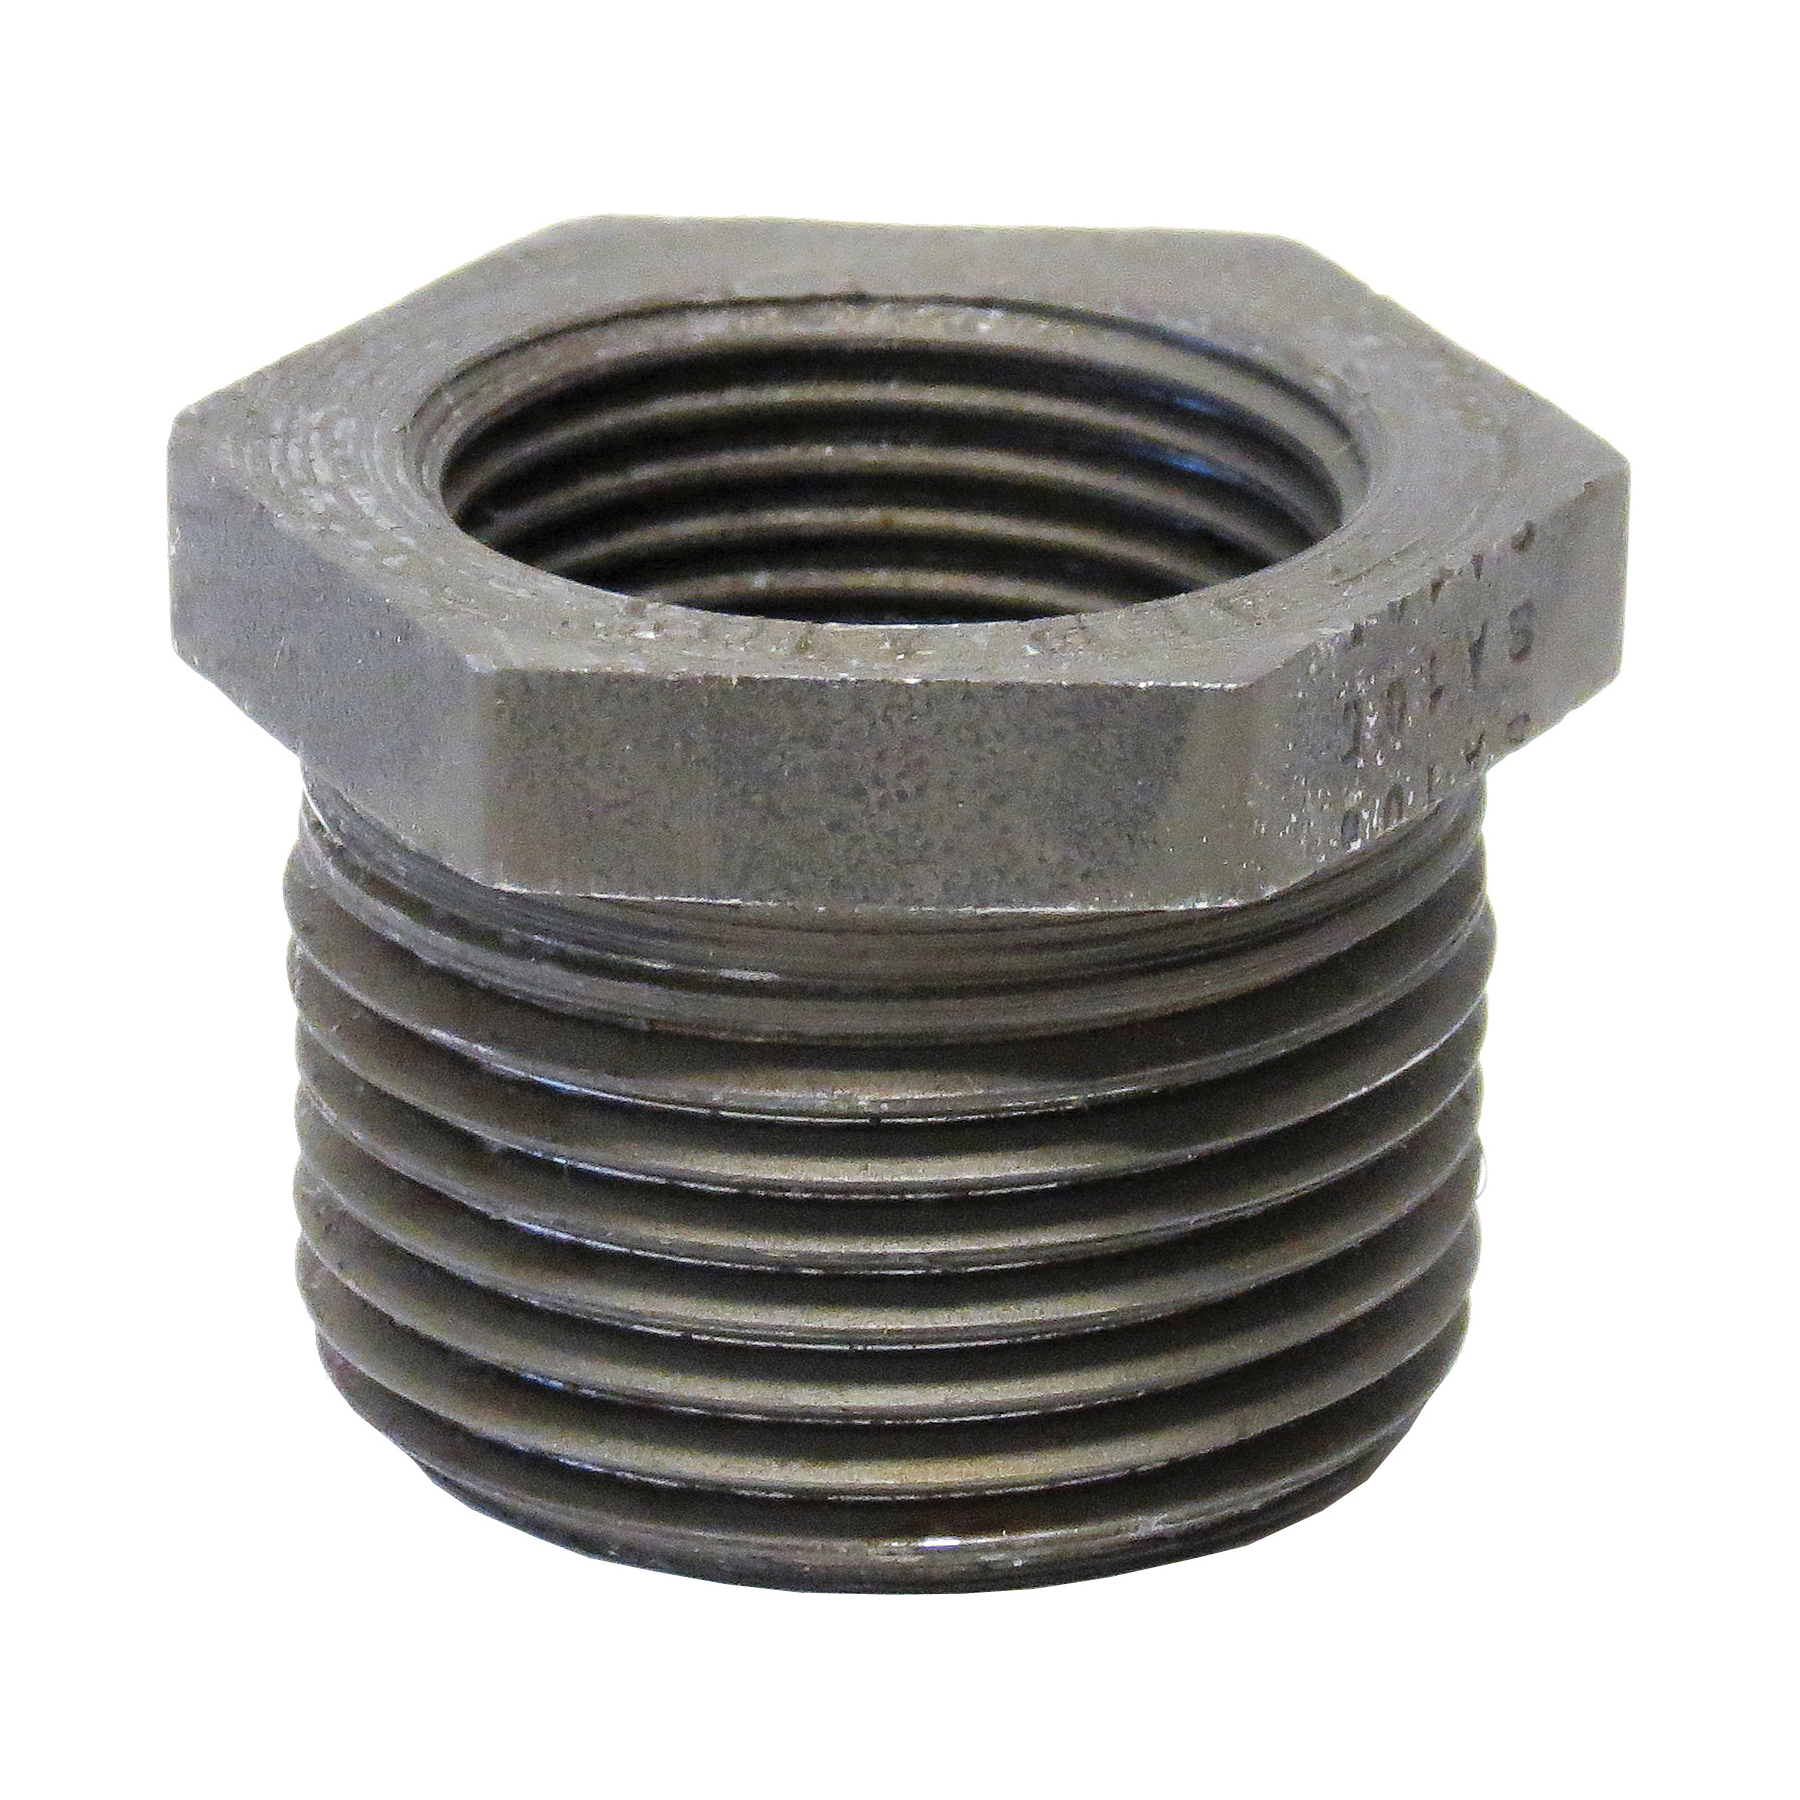 Anvil® 0361331408 FIG 2139 Hex Head Pipe Bushing, 1 x 3/4 in Nominal, MNPT x FNPT End Style, 3000 lb, Steel, Black Oxide, Domestic